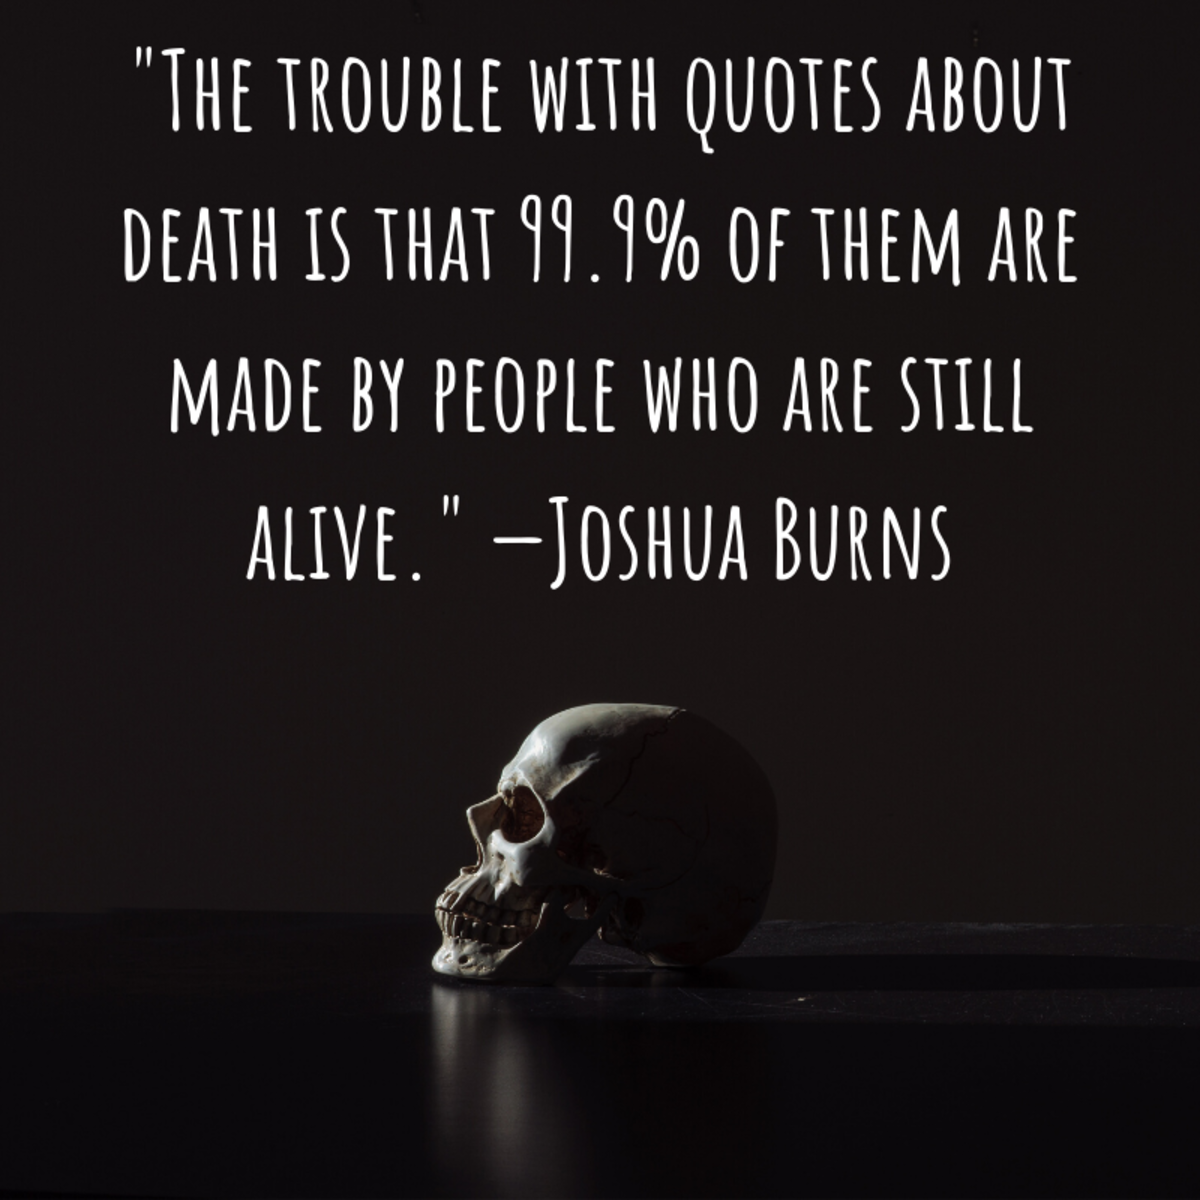 """The trouble with quotes about death is that 99.9% of them are made by people who are still alive."" —Joshua Burns"